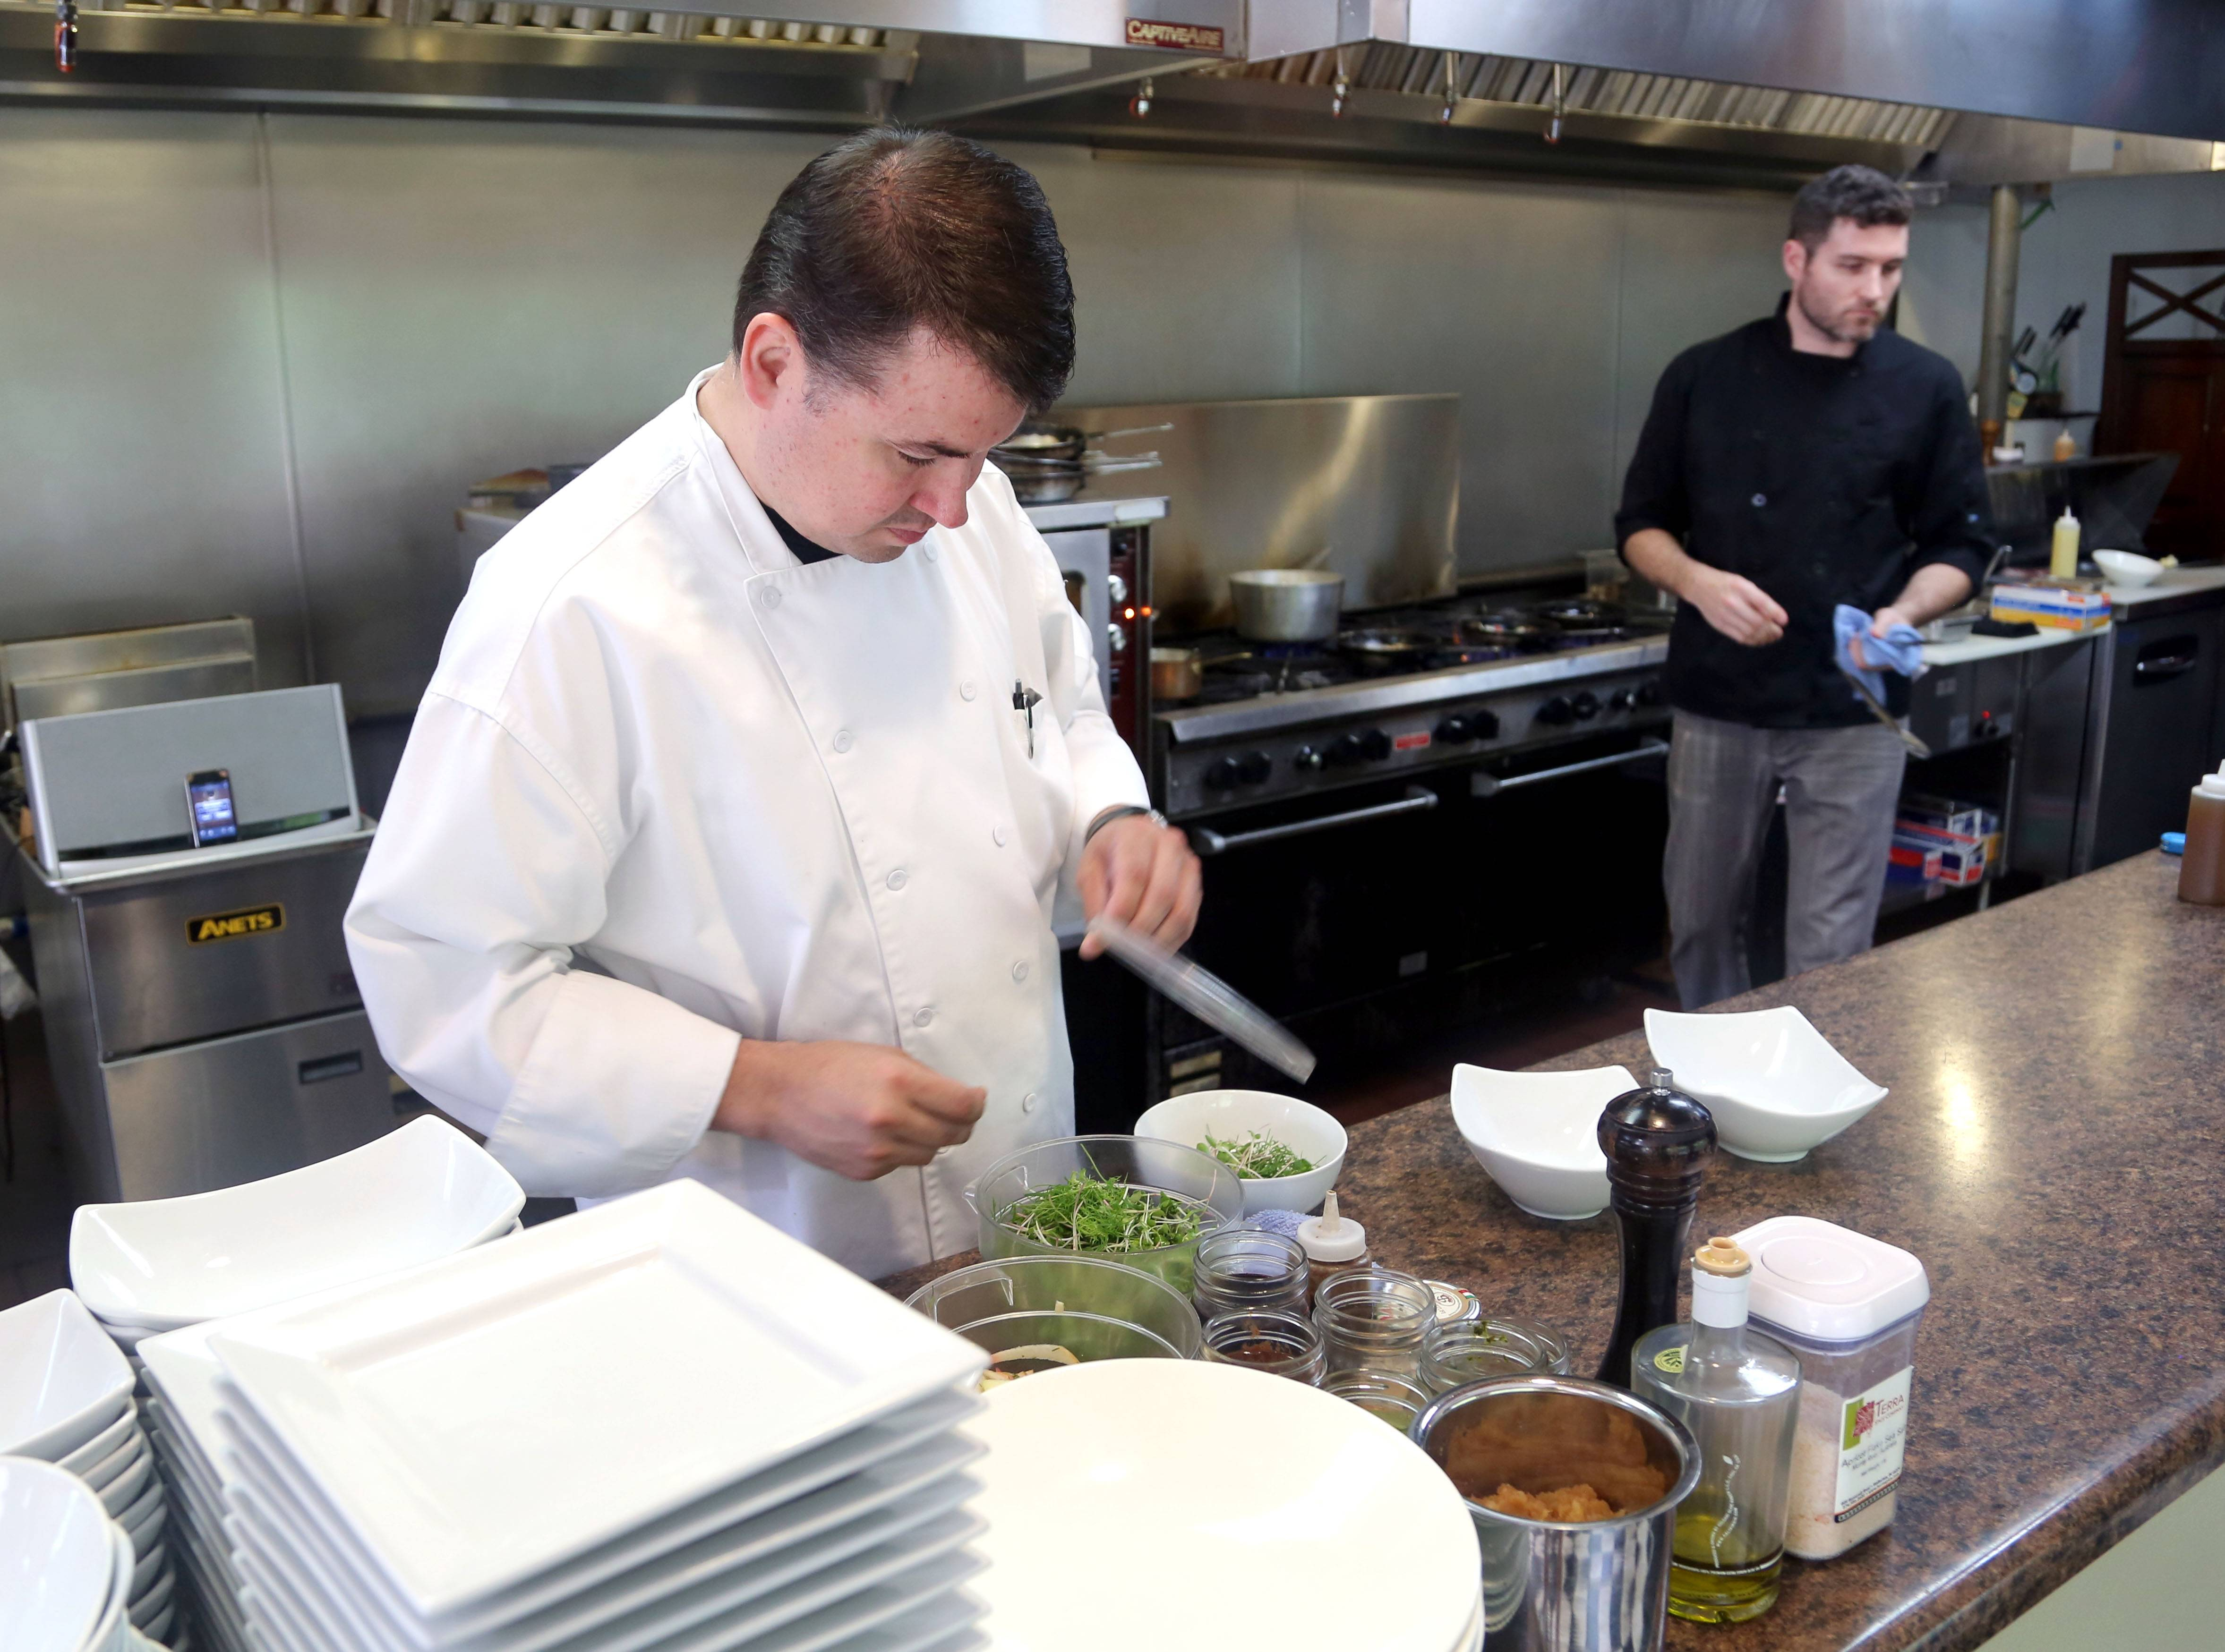 Chef/owner Rick Starr prepares seasonal, farm-raise dishes at Ad-Lib Geo Cafe in Lindenhurst.